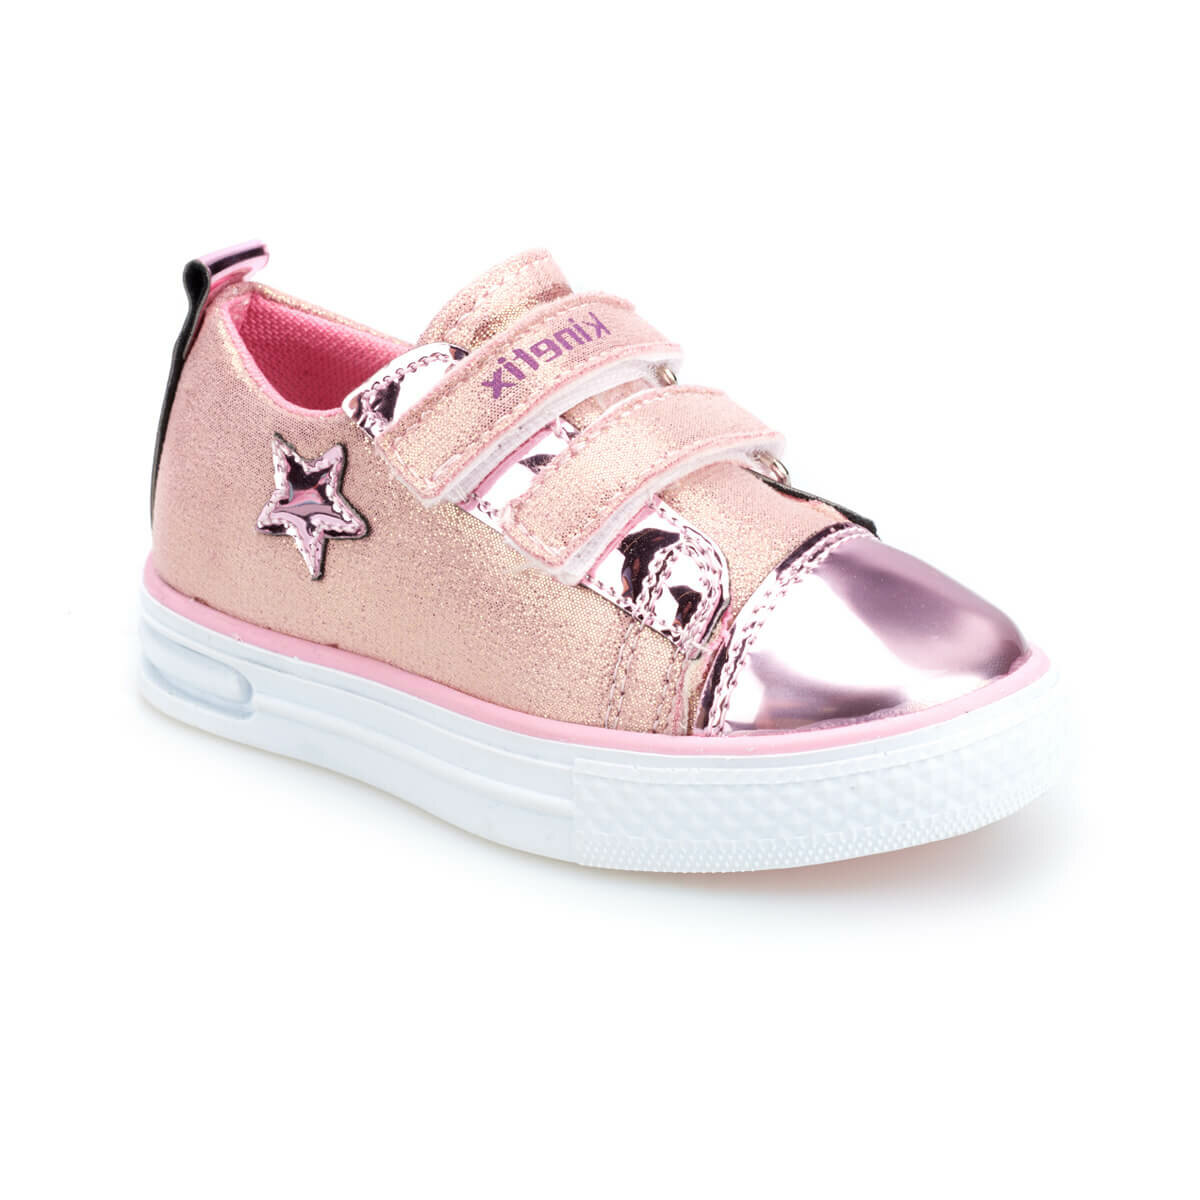 FLO SALEM Pink Male Child Sneaker Shoes KINETIX